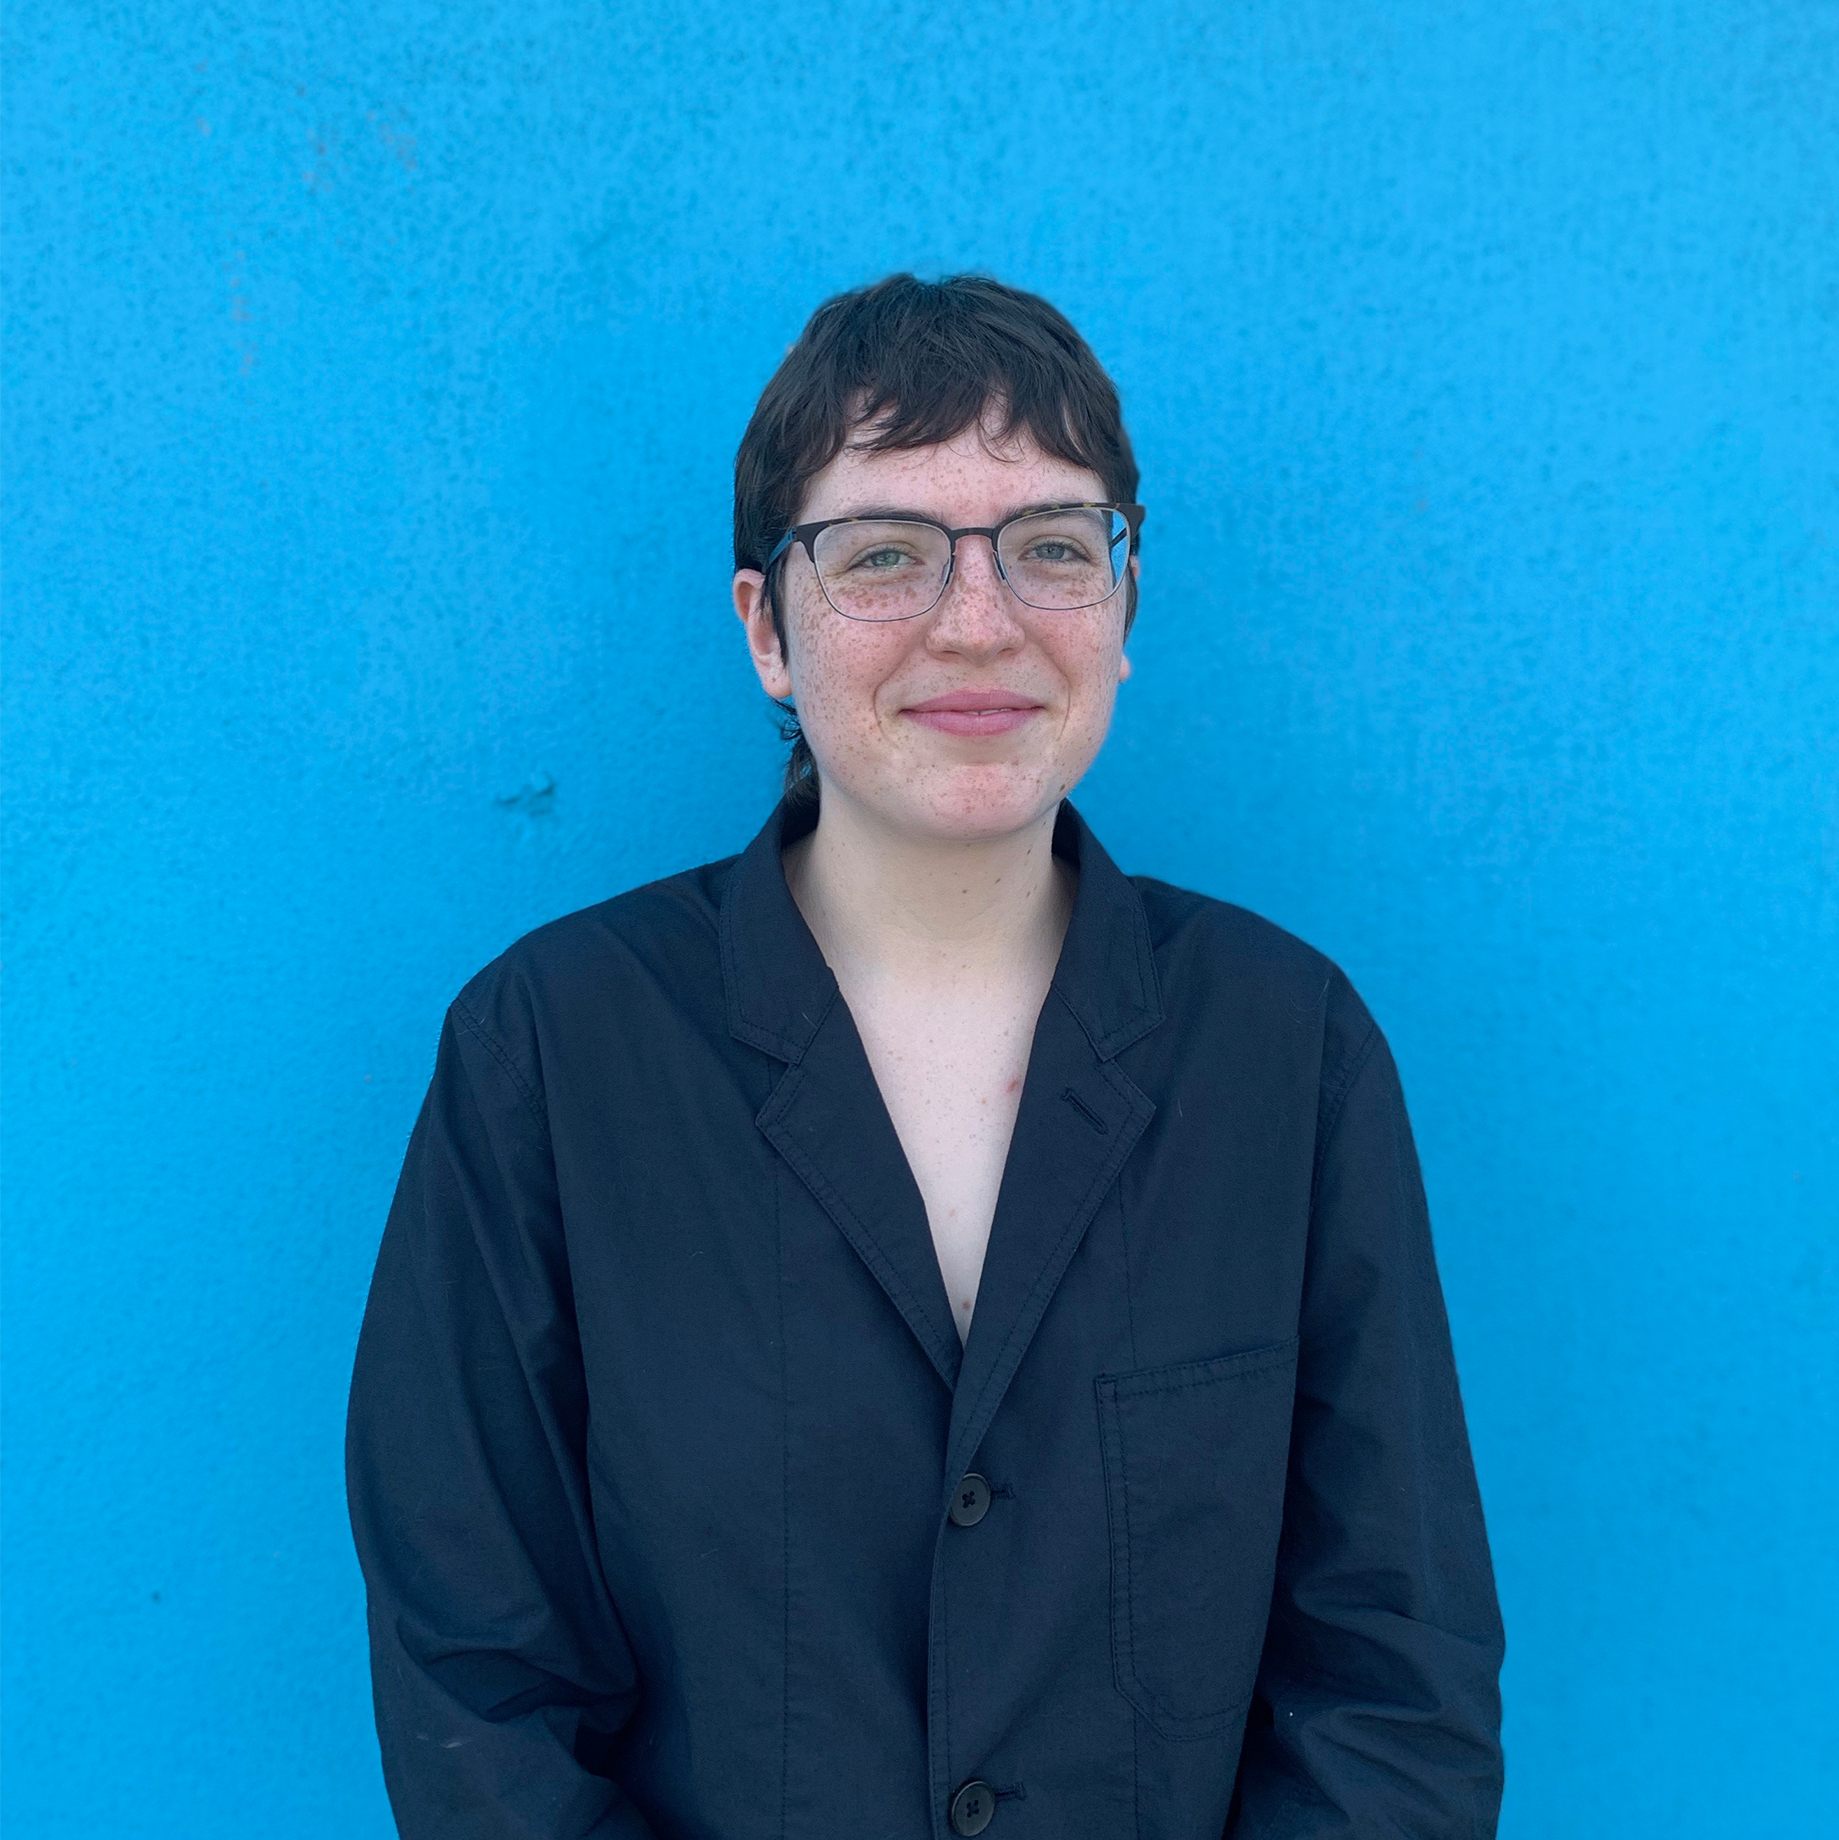 SOPHIE EPSTEIN - Designer  Sophie joined Square Design in 2019 and holds a BA from NYU's Gallatin School. Sophie enjoys designing edible sculptural objects and drawing 3-D models that are impossible to build in reality.